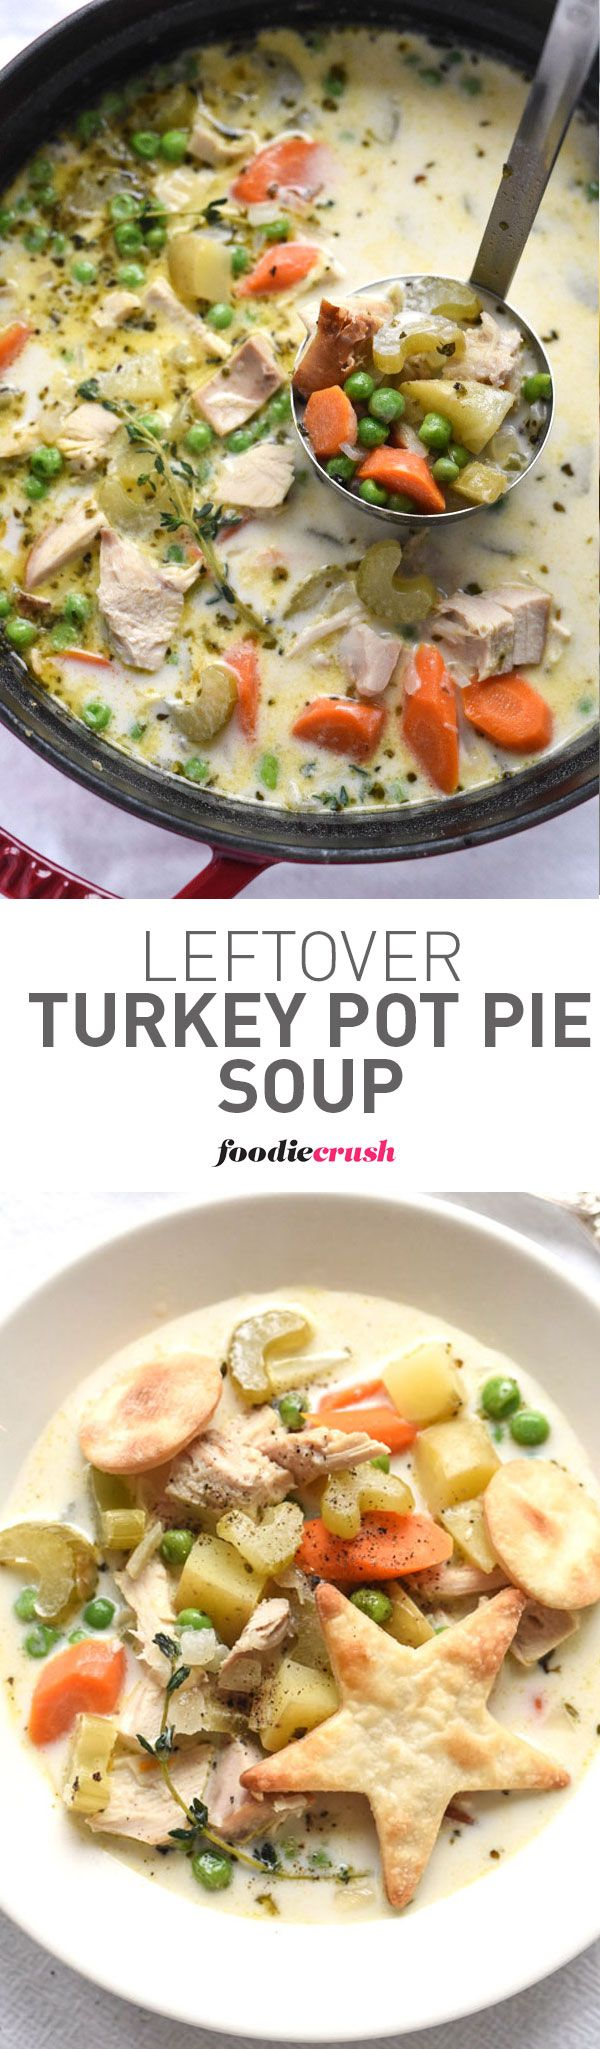 about Turkey Soup on Pinterest | Leftover turkey soup, Turkey soup ...